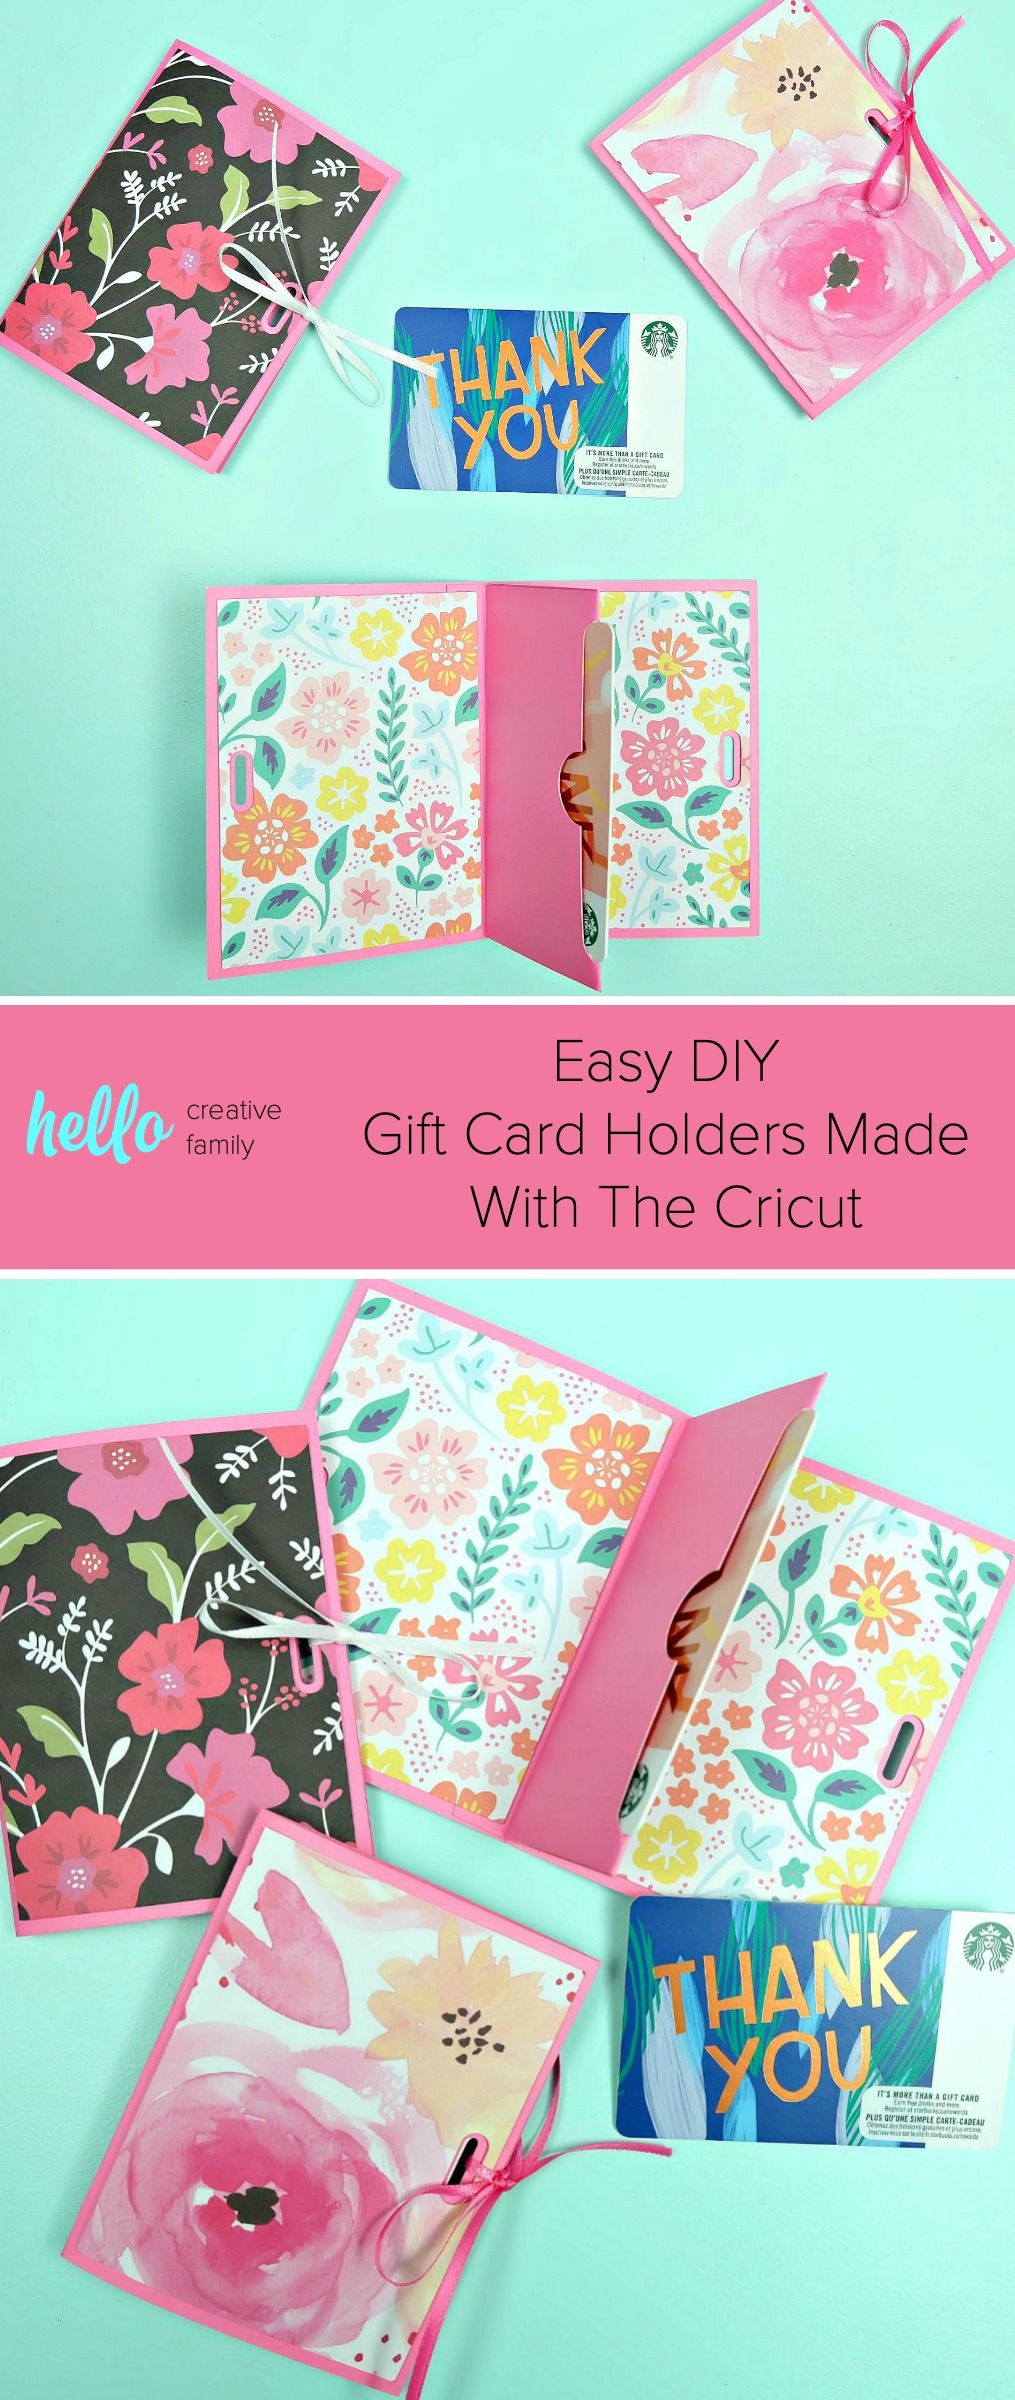 Easy Diy Gift Card Holders Made With The Cricut Diy Gift Card Birthday Gift Cards Easy Handmade Gifts